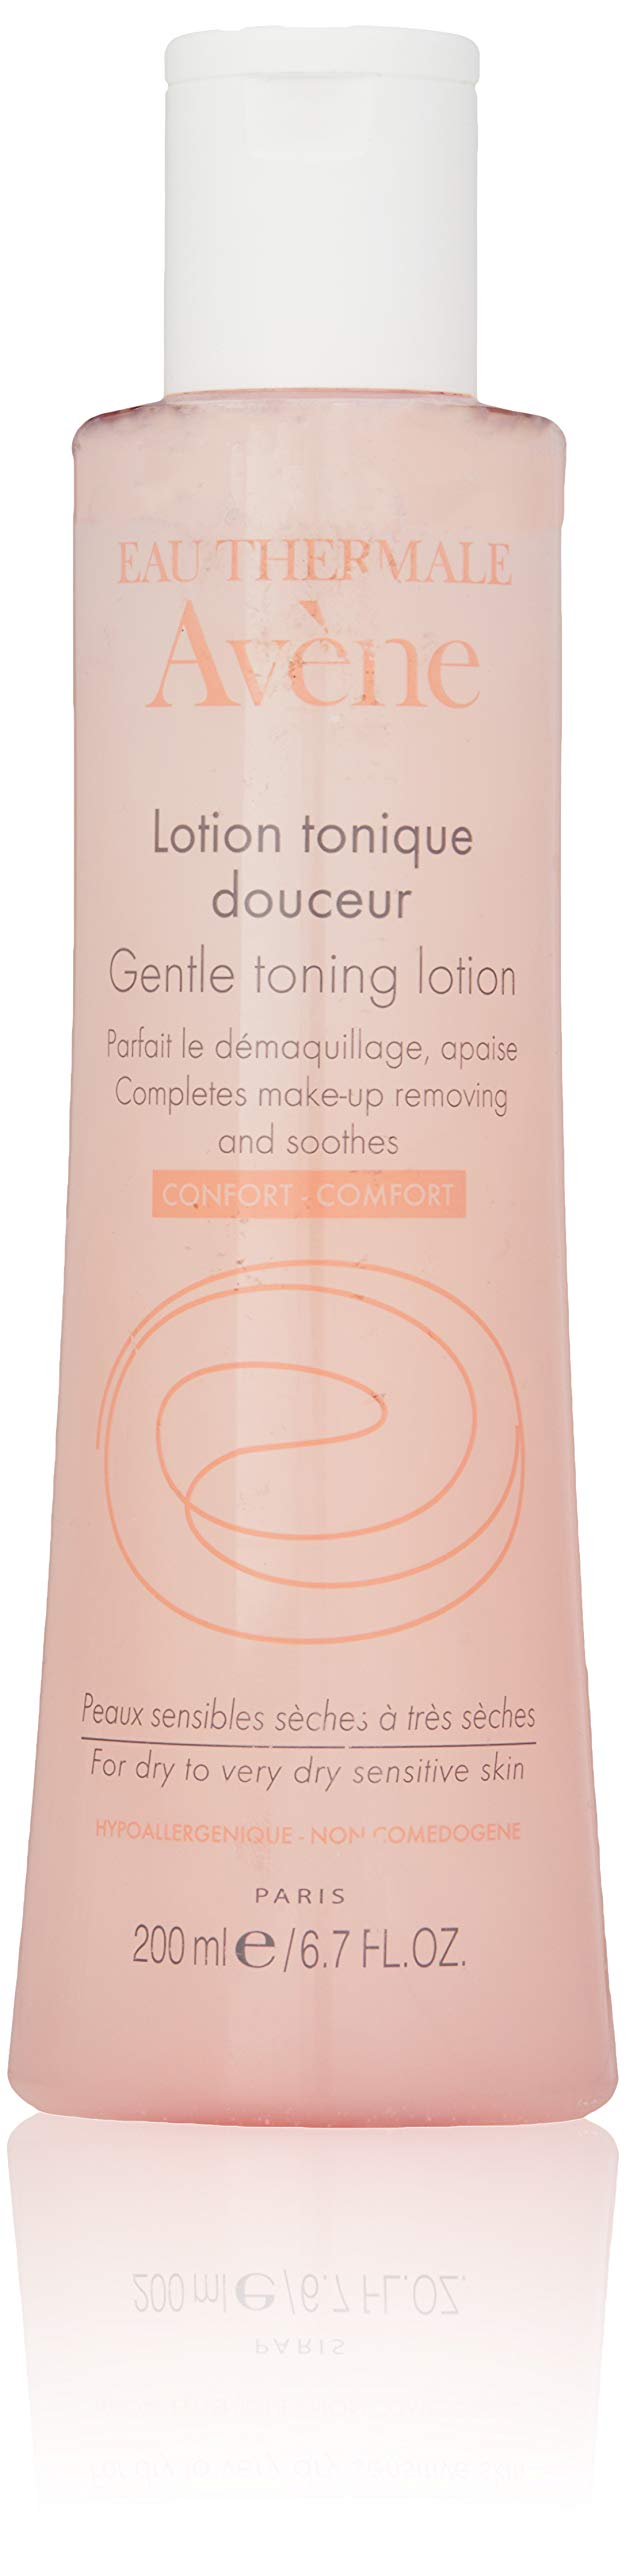 Eau Thermale Avene Gentle Toning Lotion,  6.7 Oz by Eau Thermale Avène